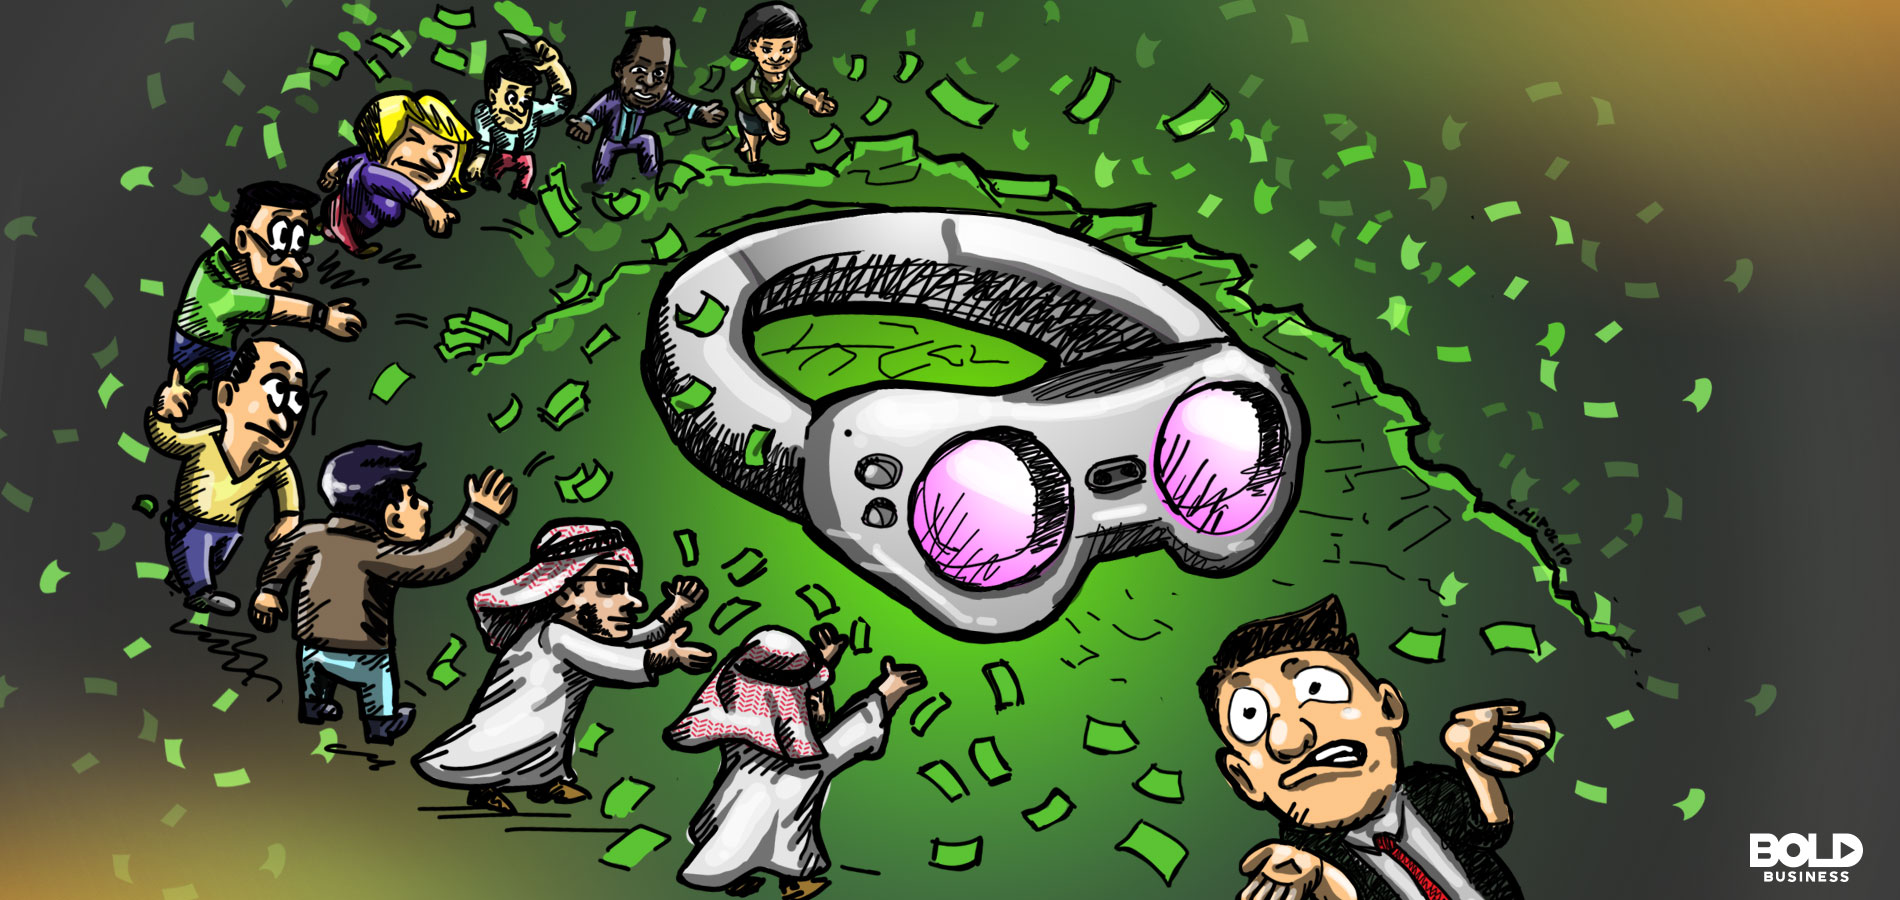 a cartoon of Magic Leap's protoype of augmented reality glasses being surrounded by a group of racially diverse people throwing money at it